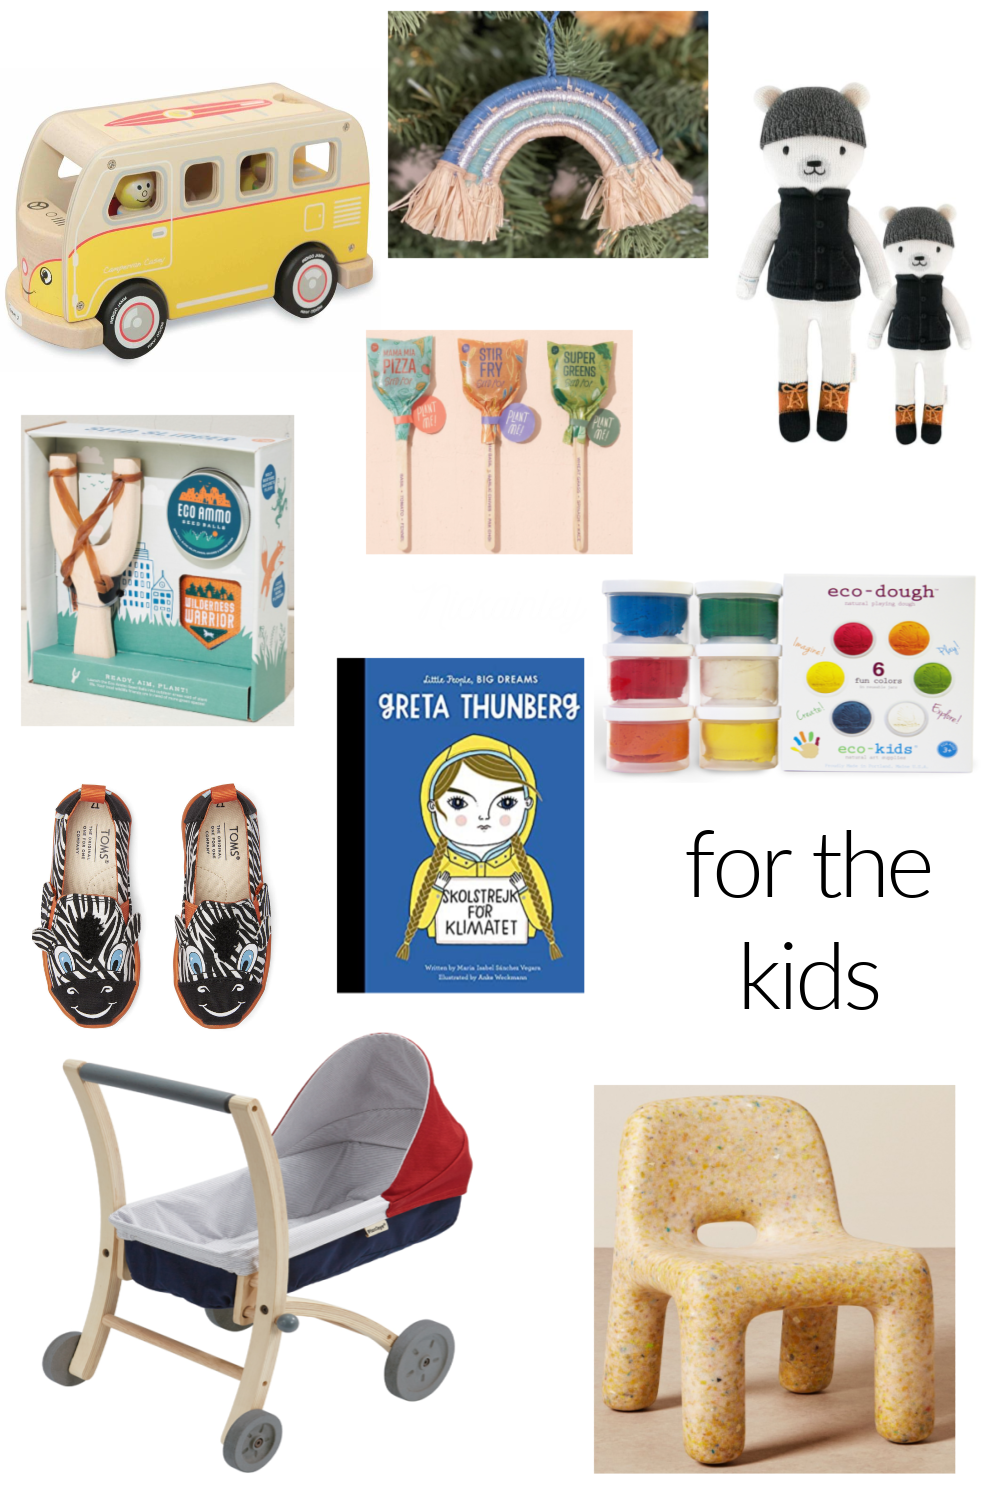 HOLIDAY 2020 GIFT GUIDE: UNIQUE GIFTS FOR KIDS